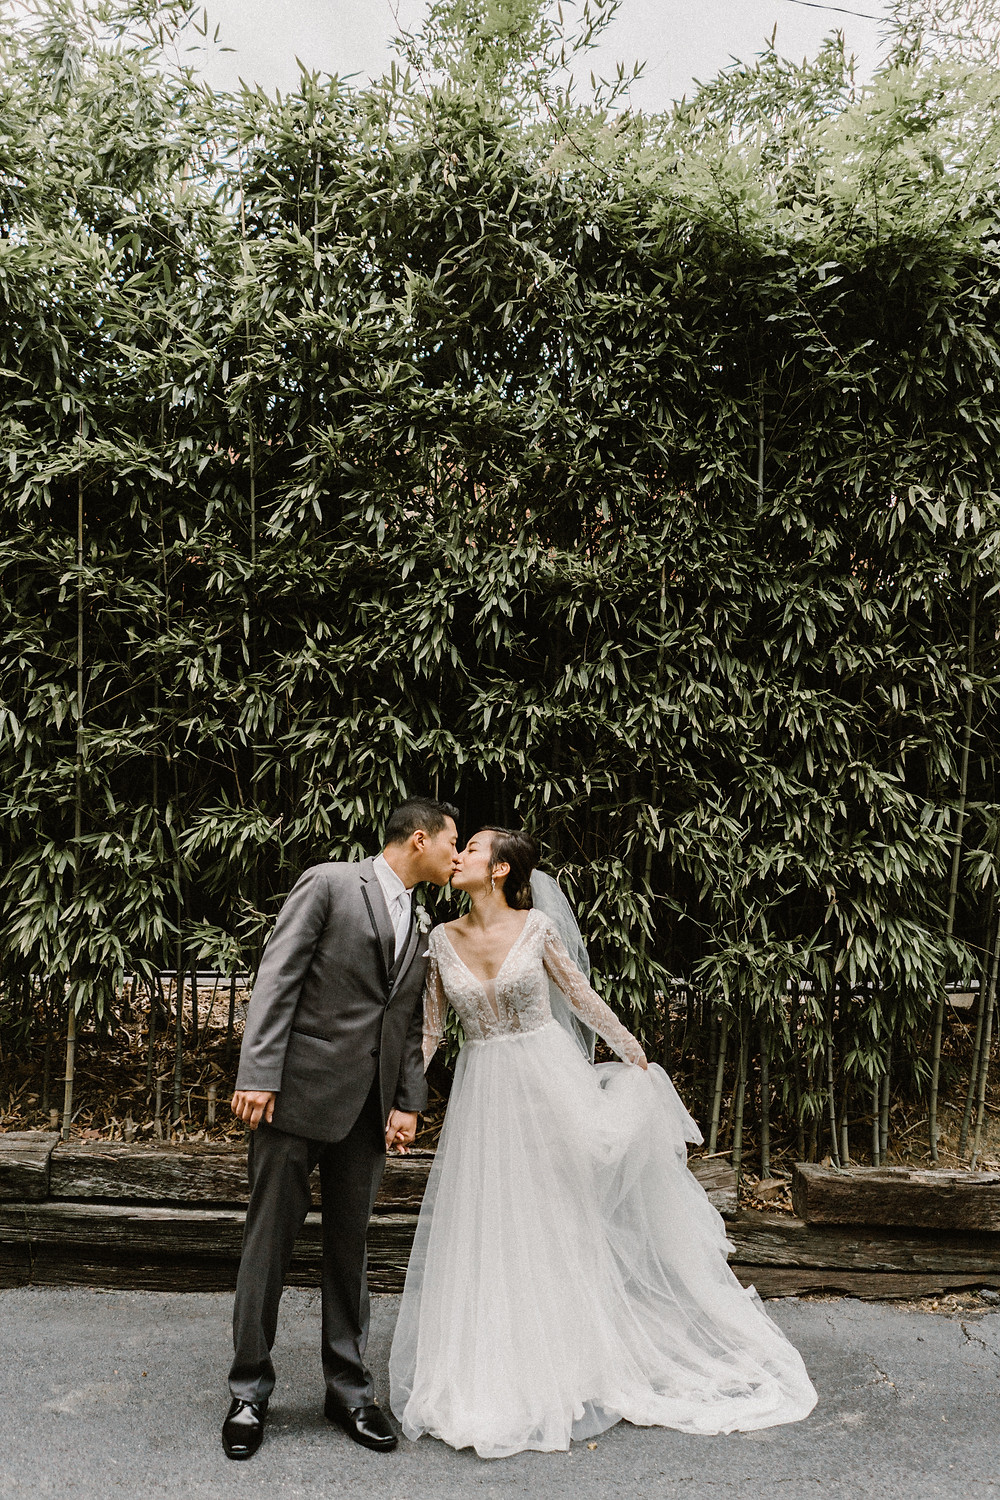 asian couple kissing in a garde. Tulle wedding dres and gary suit